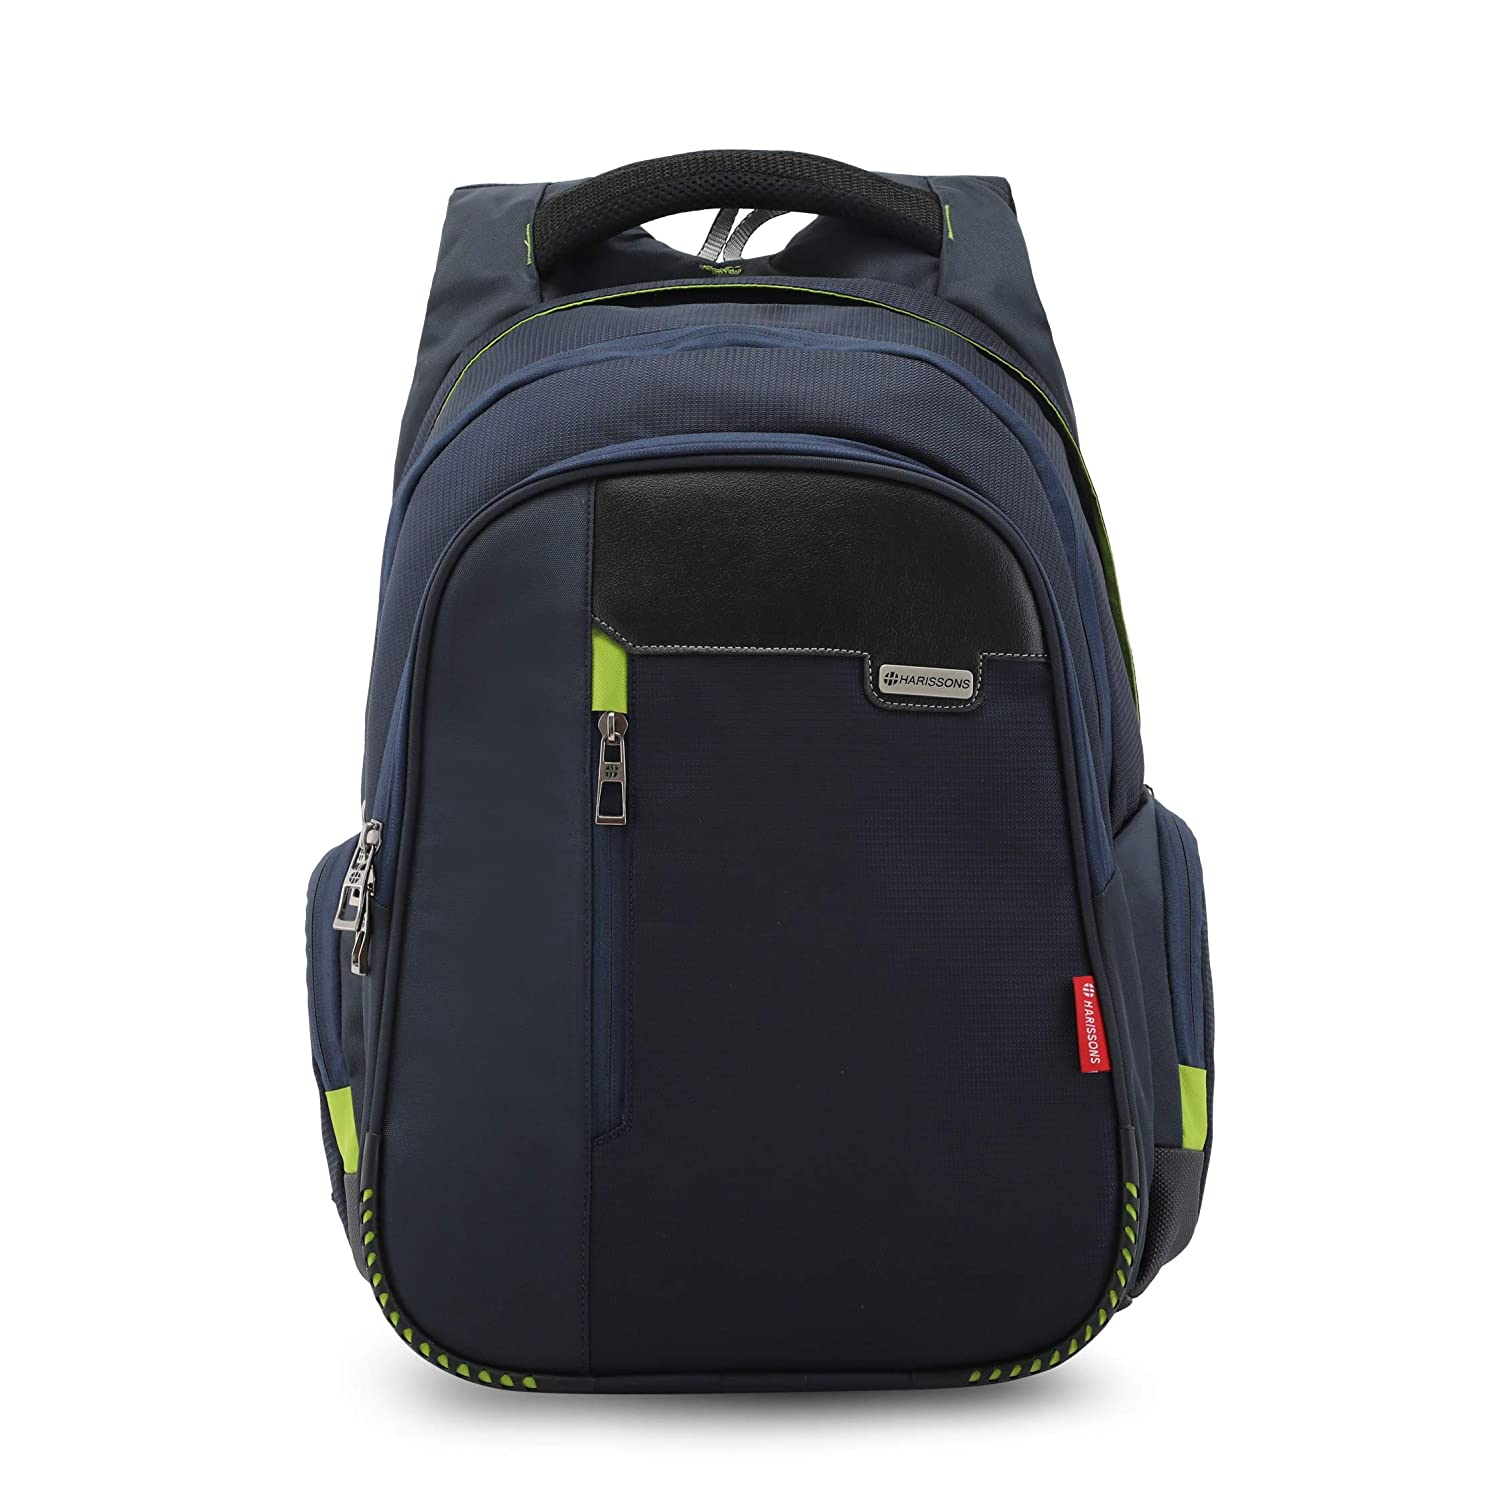 harrison best laptop waterproof backpack with usb charging